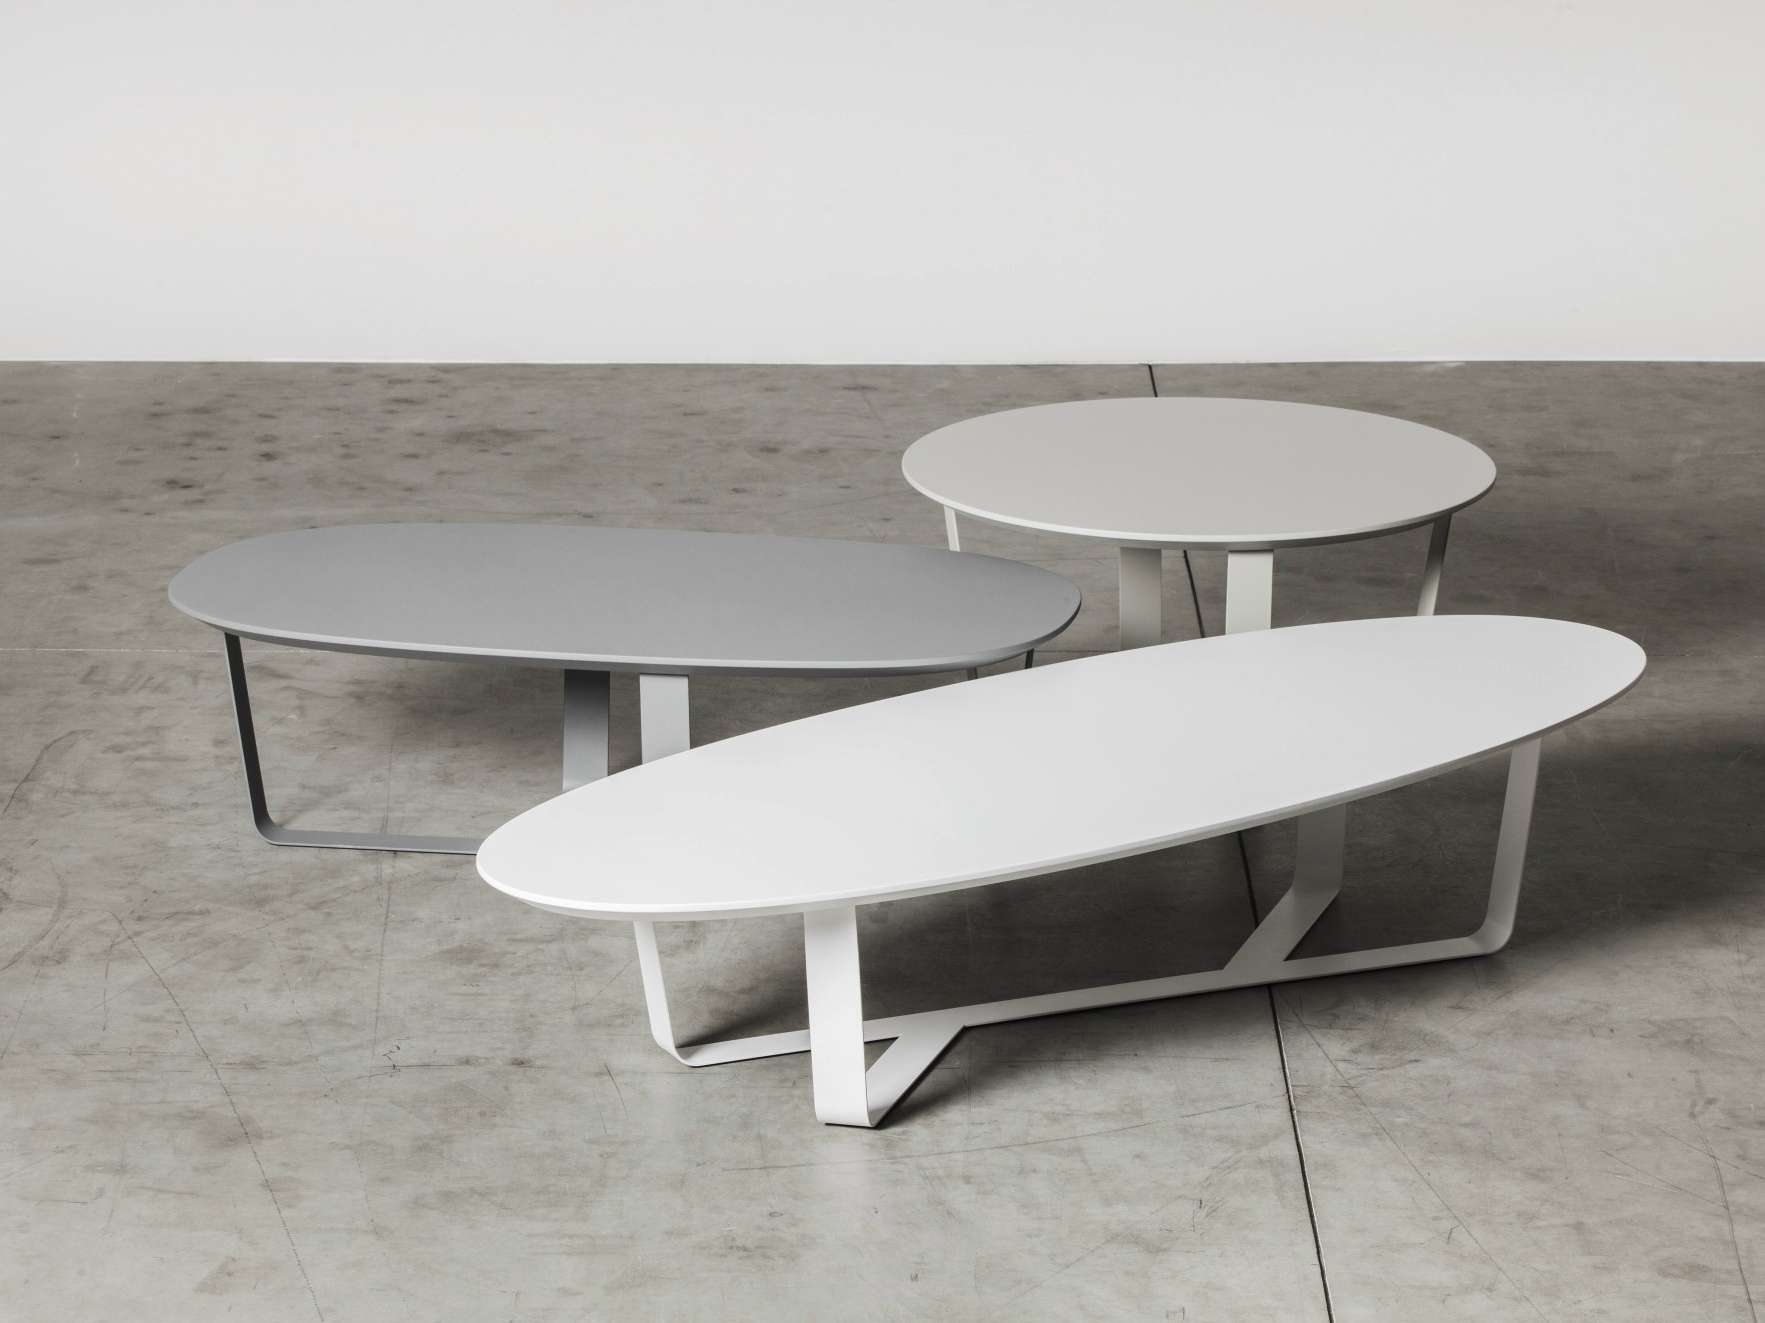 Displaying s of Oblong Coffee Tables View 6 of 20 s